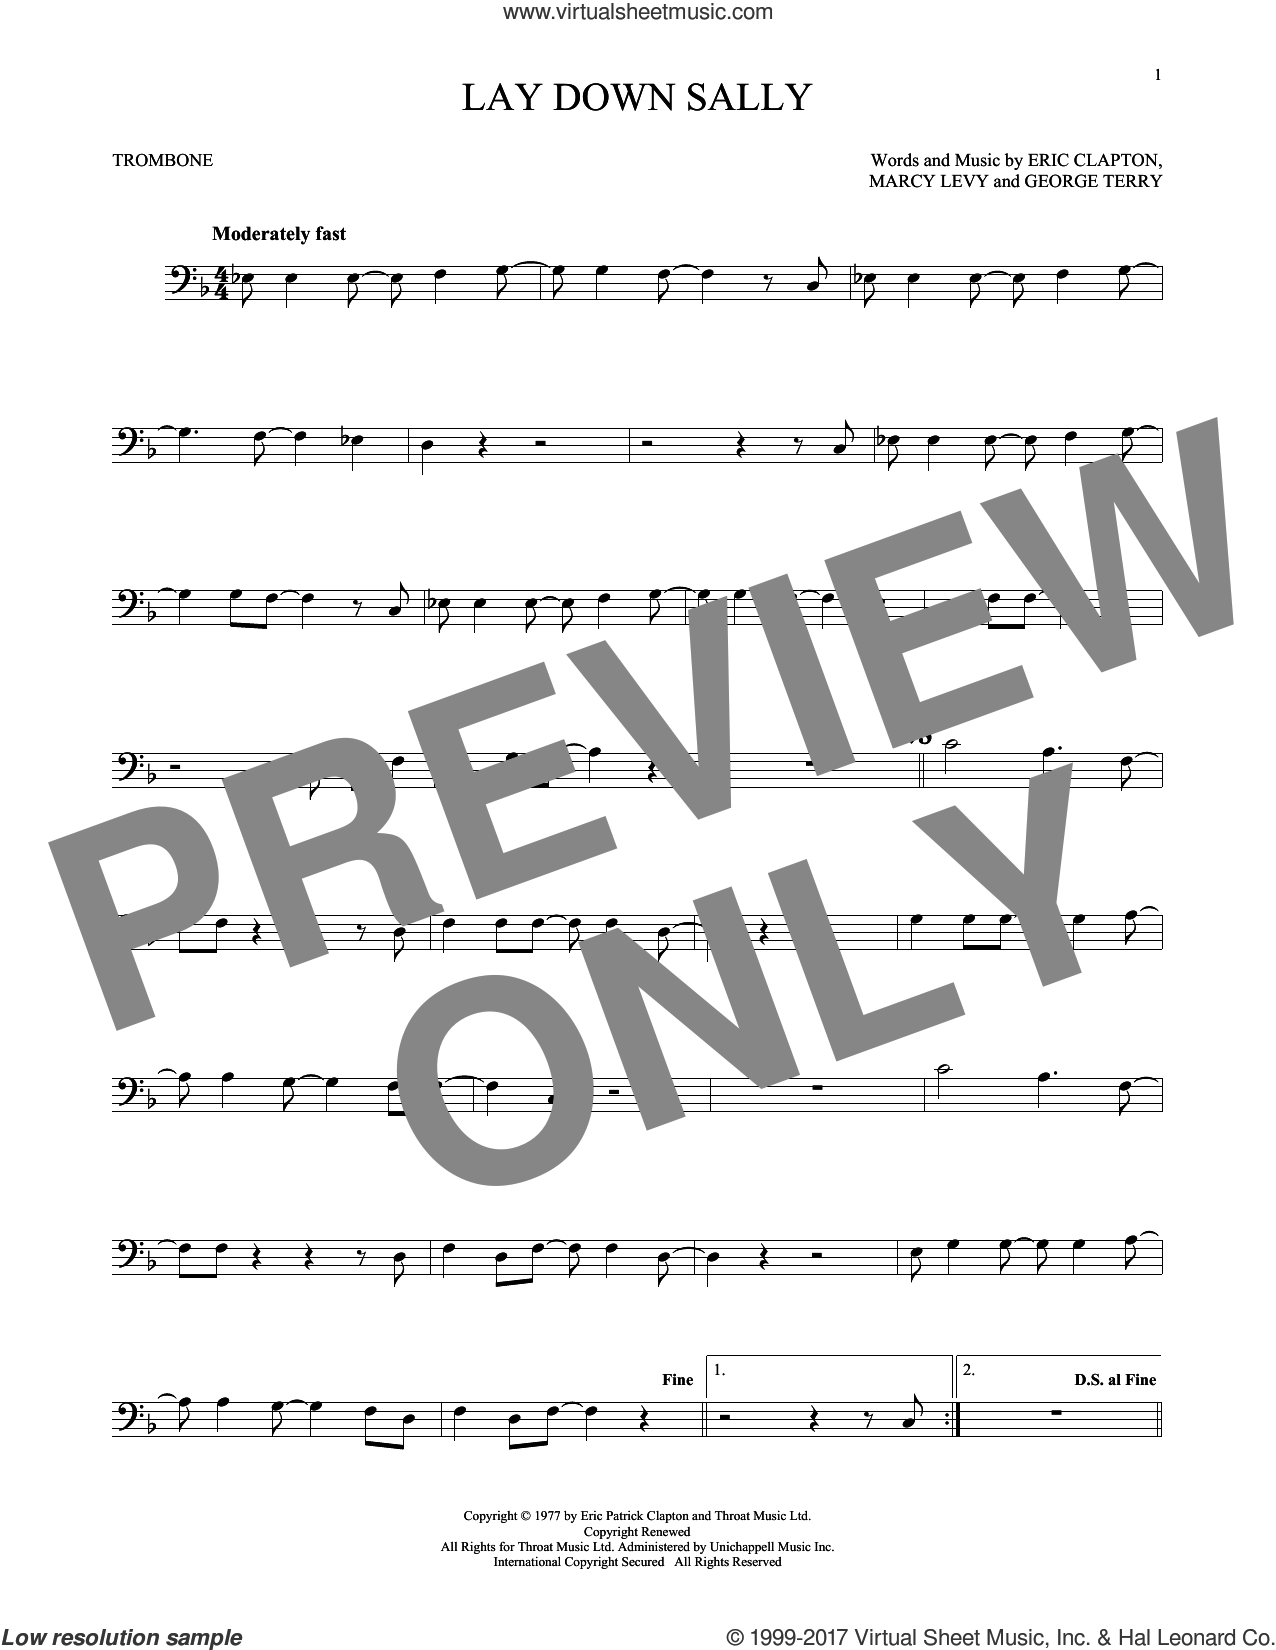 Lay Down Sally sheet music for trombone solo by Eric Clapton, George Terry and Marcy Levy, intermediate skill level